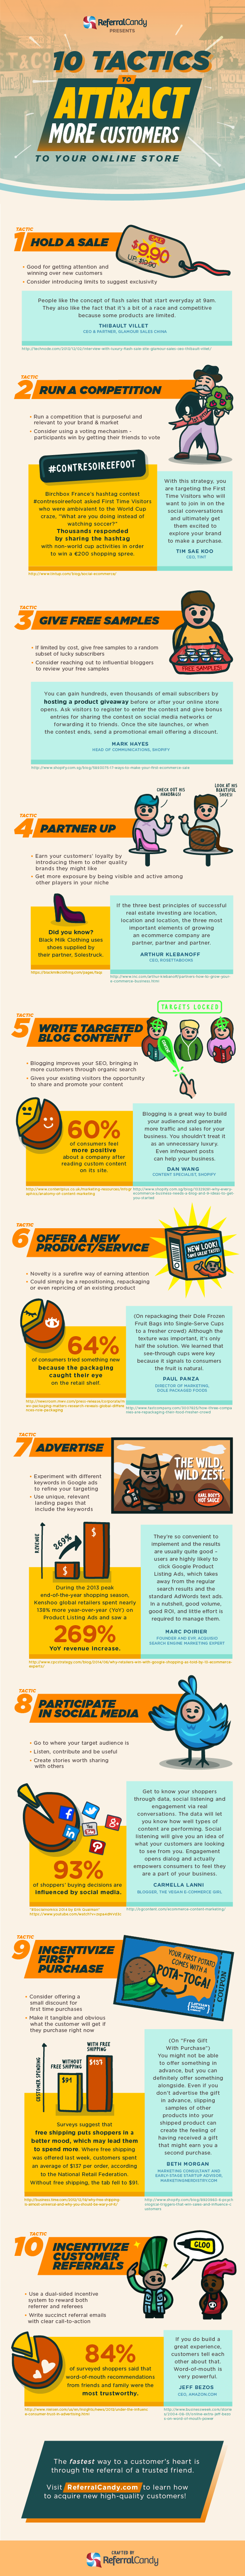 10 Tactics To Attract More Customers To Your Online Store #infographic